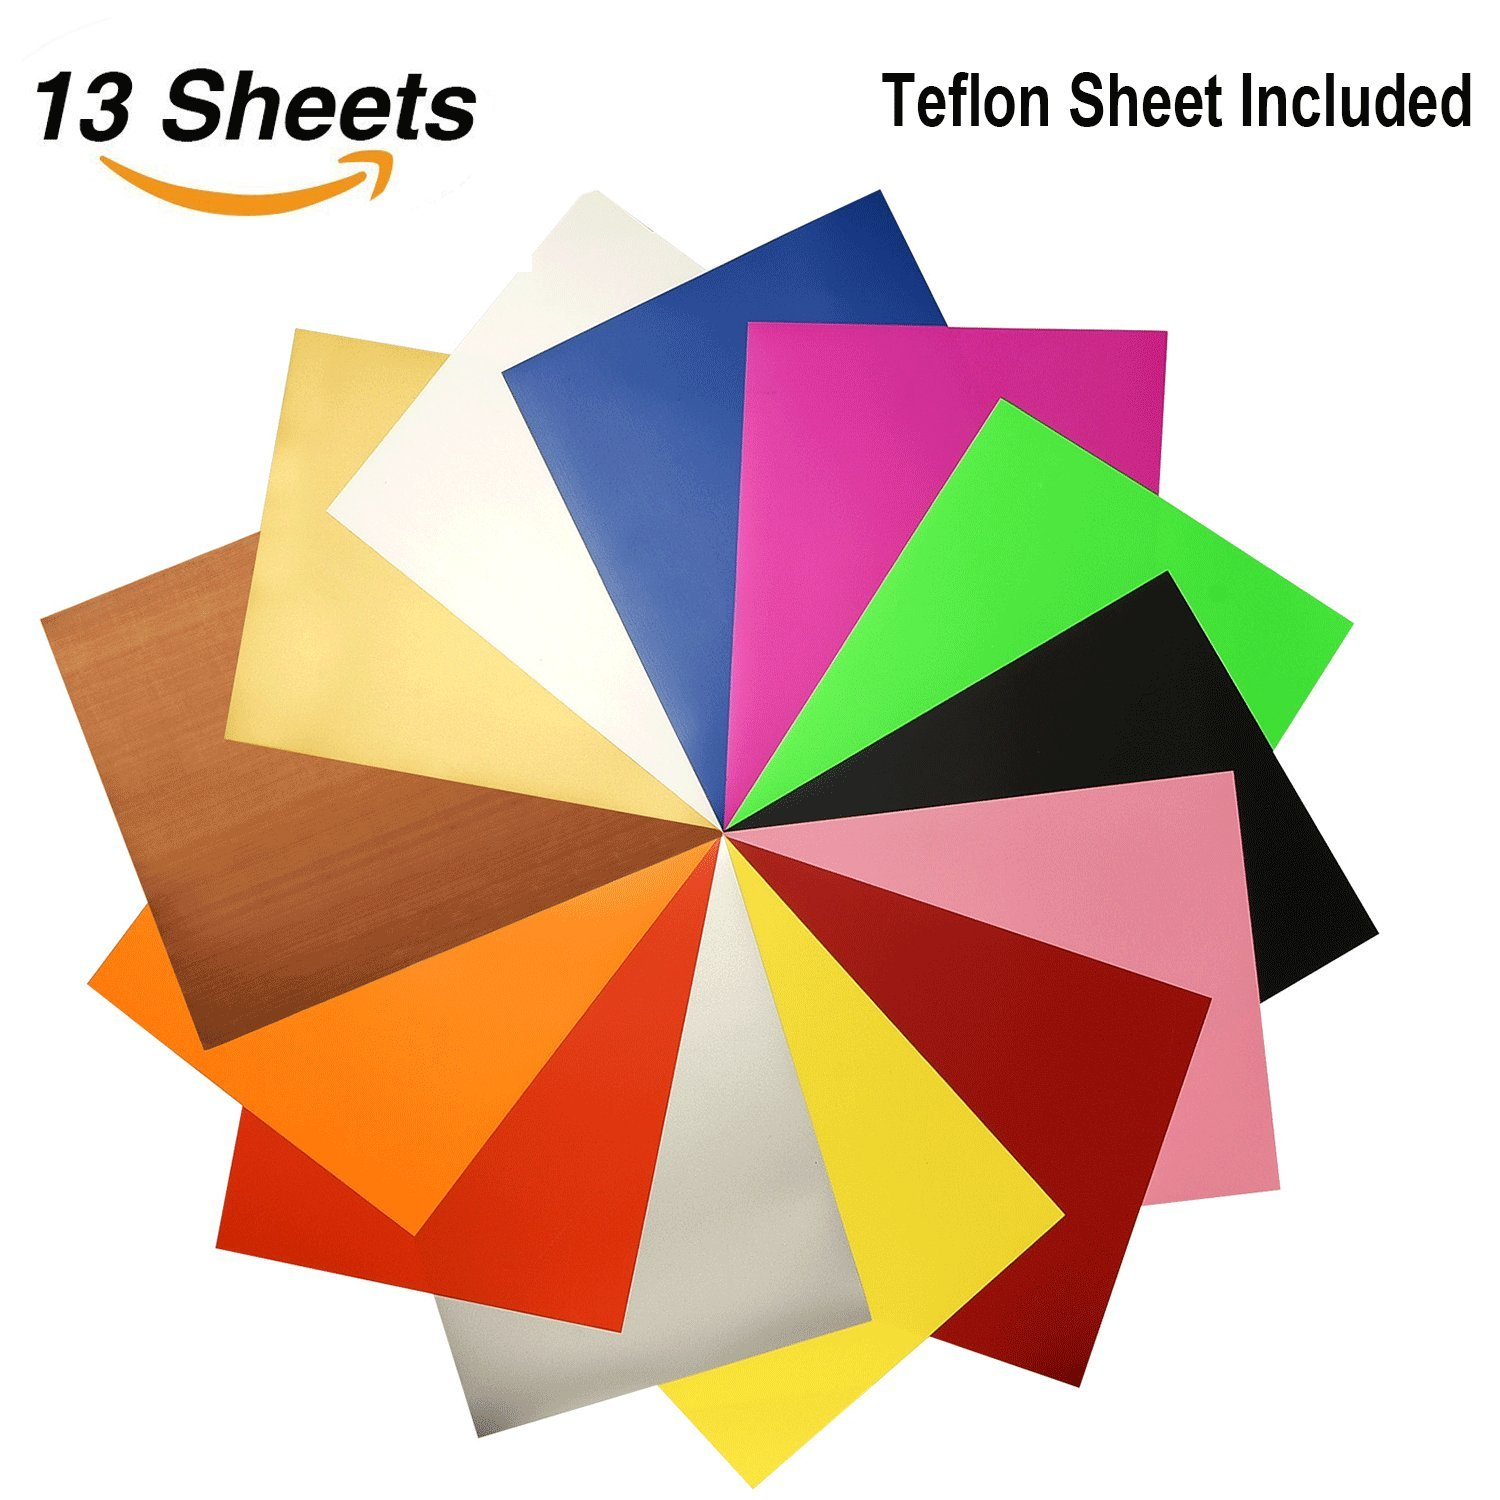 Beauty-US Assorted Colors 12 Sheets 12''x 10'' Heat Transfer Bundle Iron on Htv for T-Shirts, Hats, Clothing Heavy Duty Vinyl for Silhouette Cameo Cricut Press Machine Tool by Beauty-US